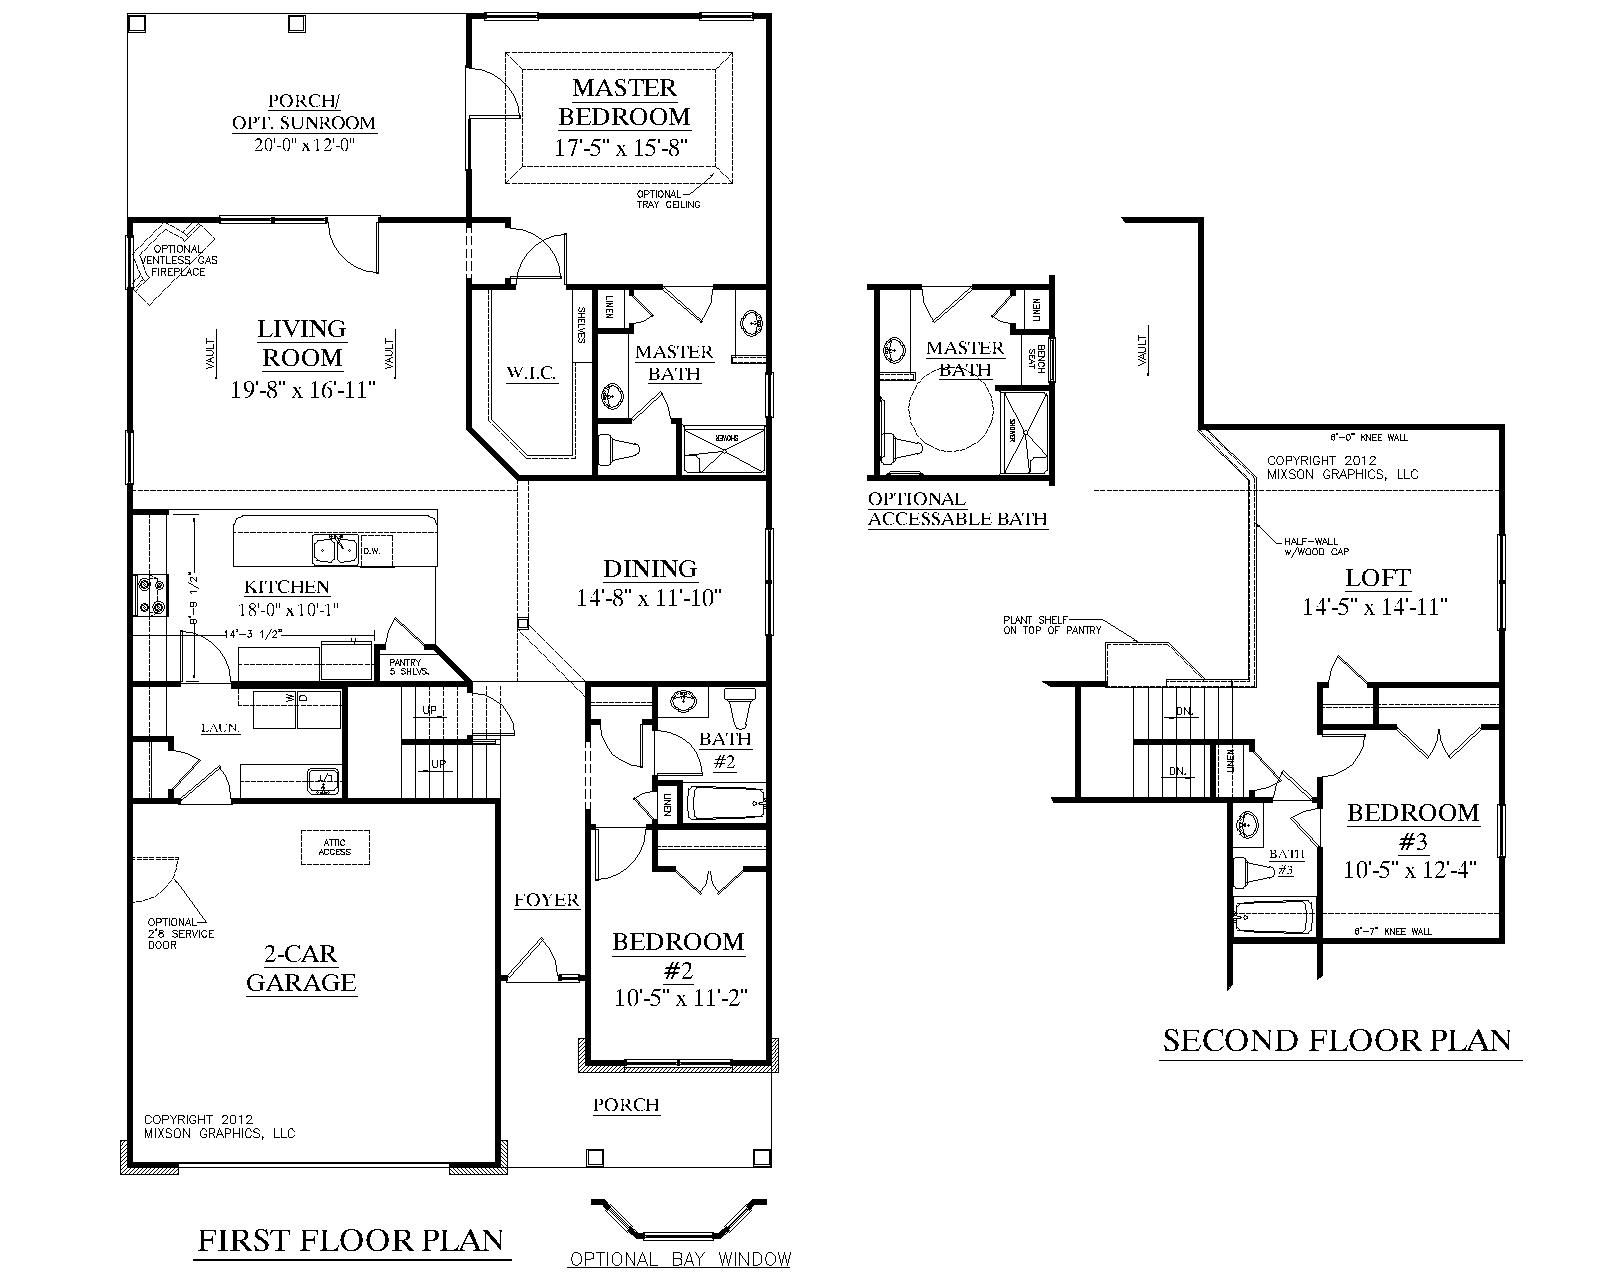 House plan 2224 kingstree floor plan traditional 1 1 2 for Traditional floor plans